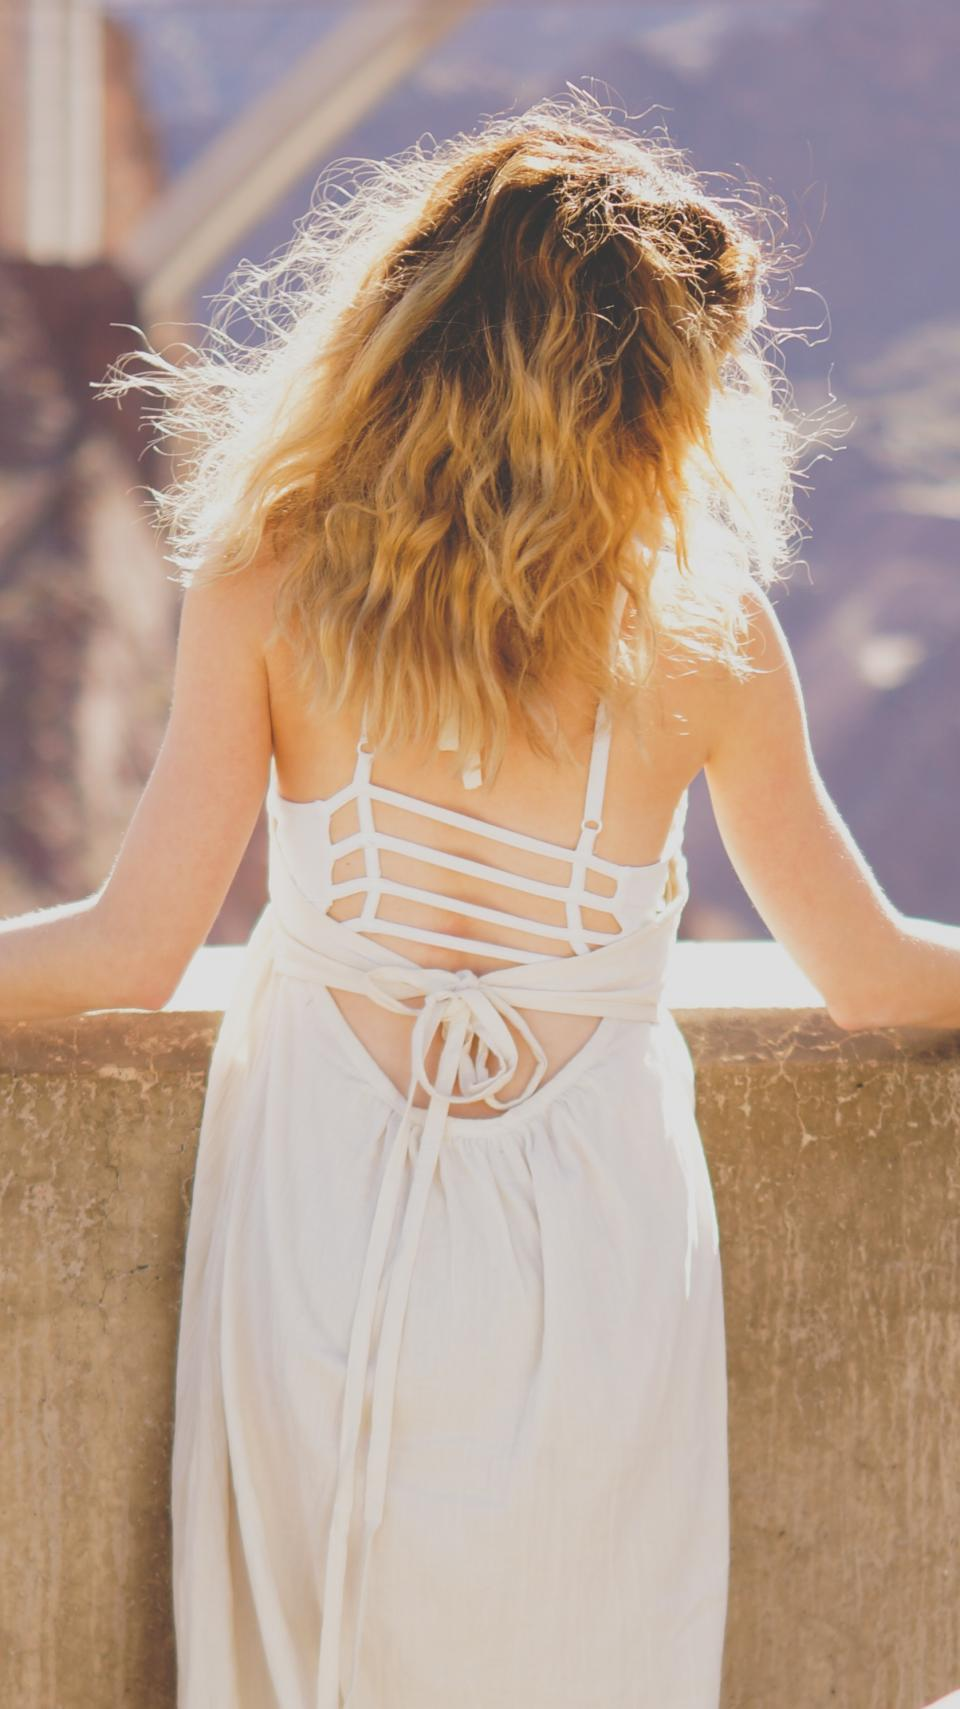 people, woman, girl, female, alone, sexy, long, white, dress, back, sunny, day